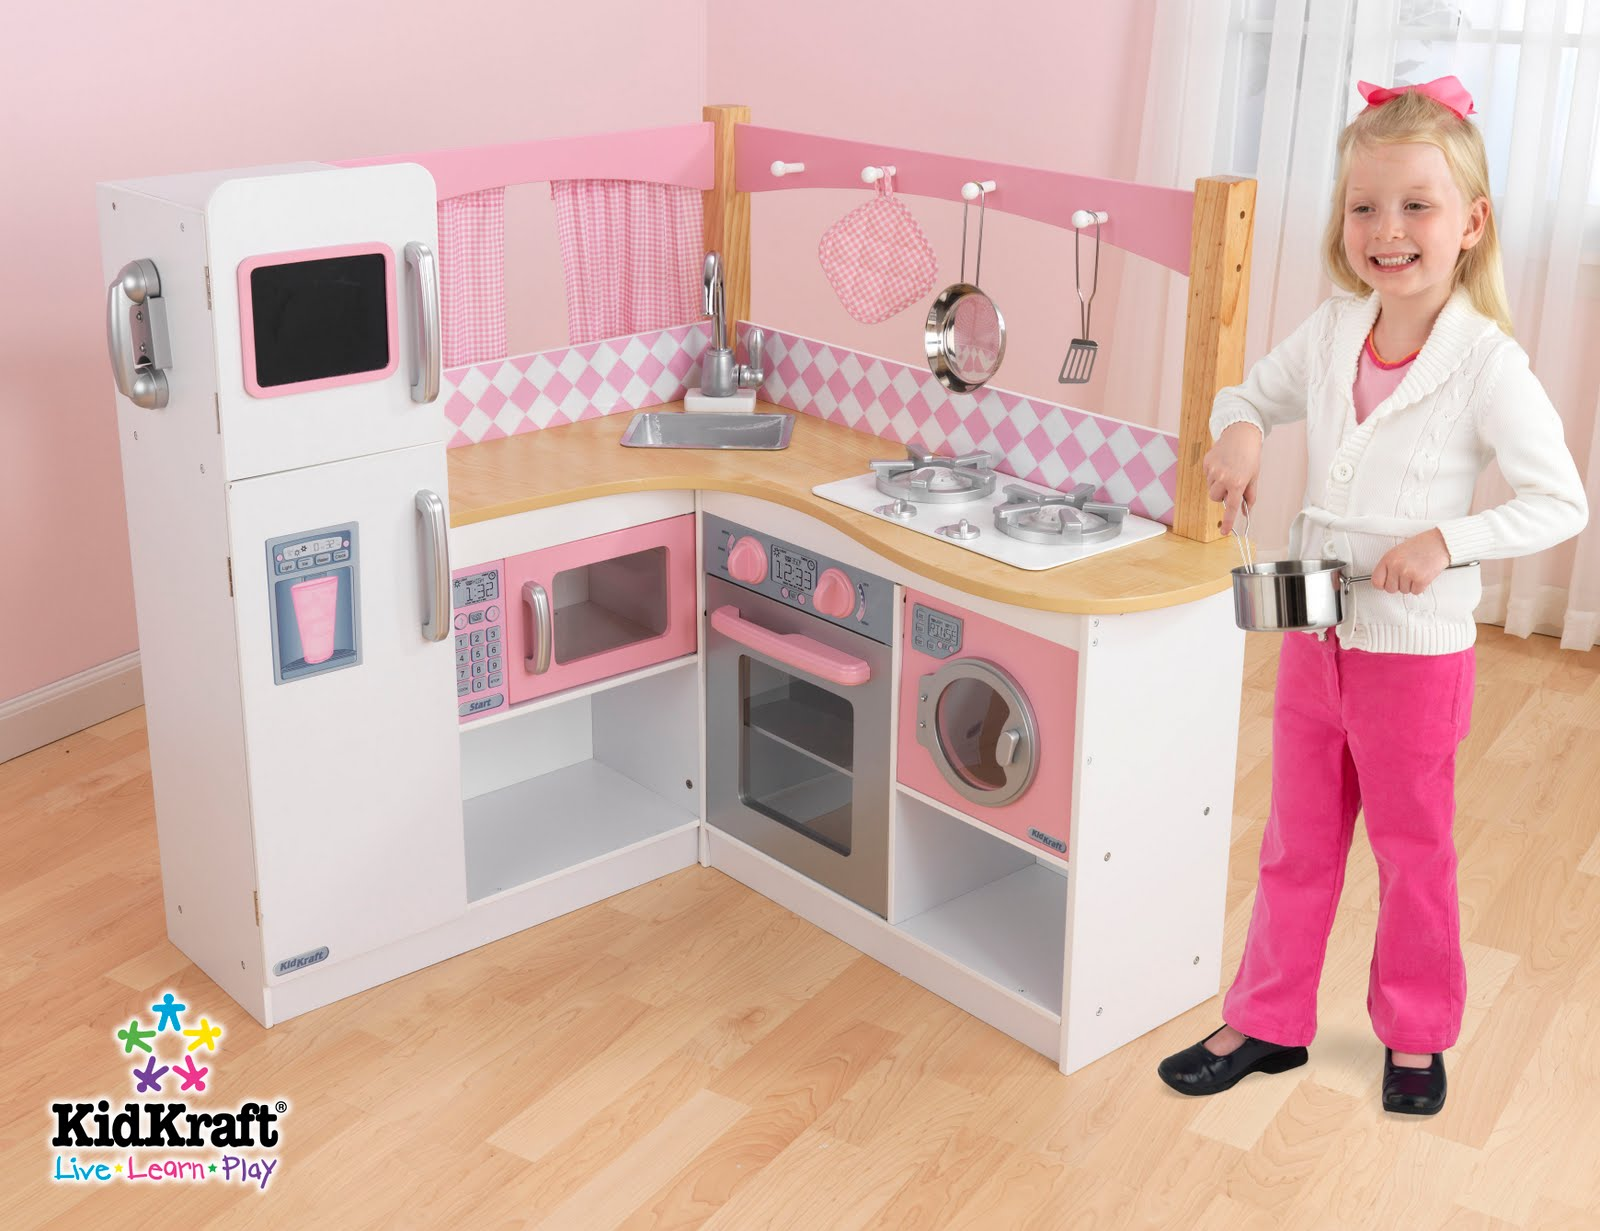 grand gourmet play kitchen is selling fast this huge play kitchen